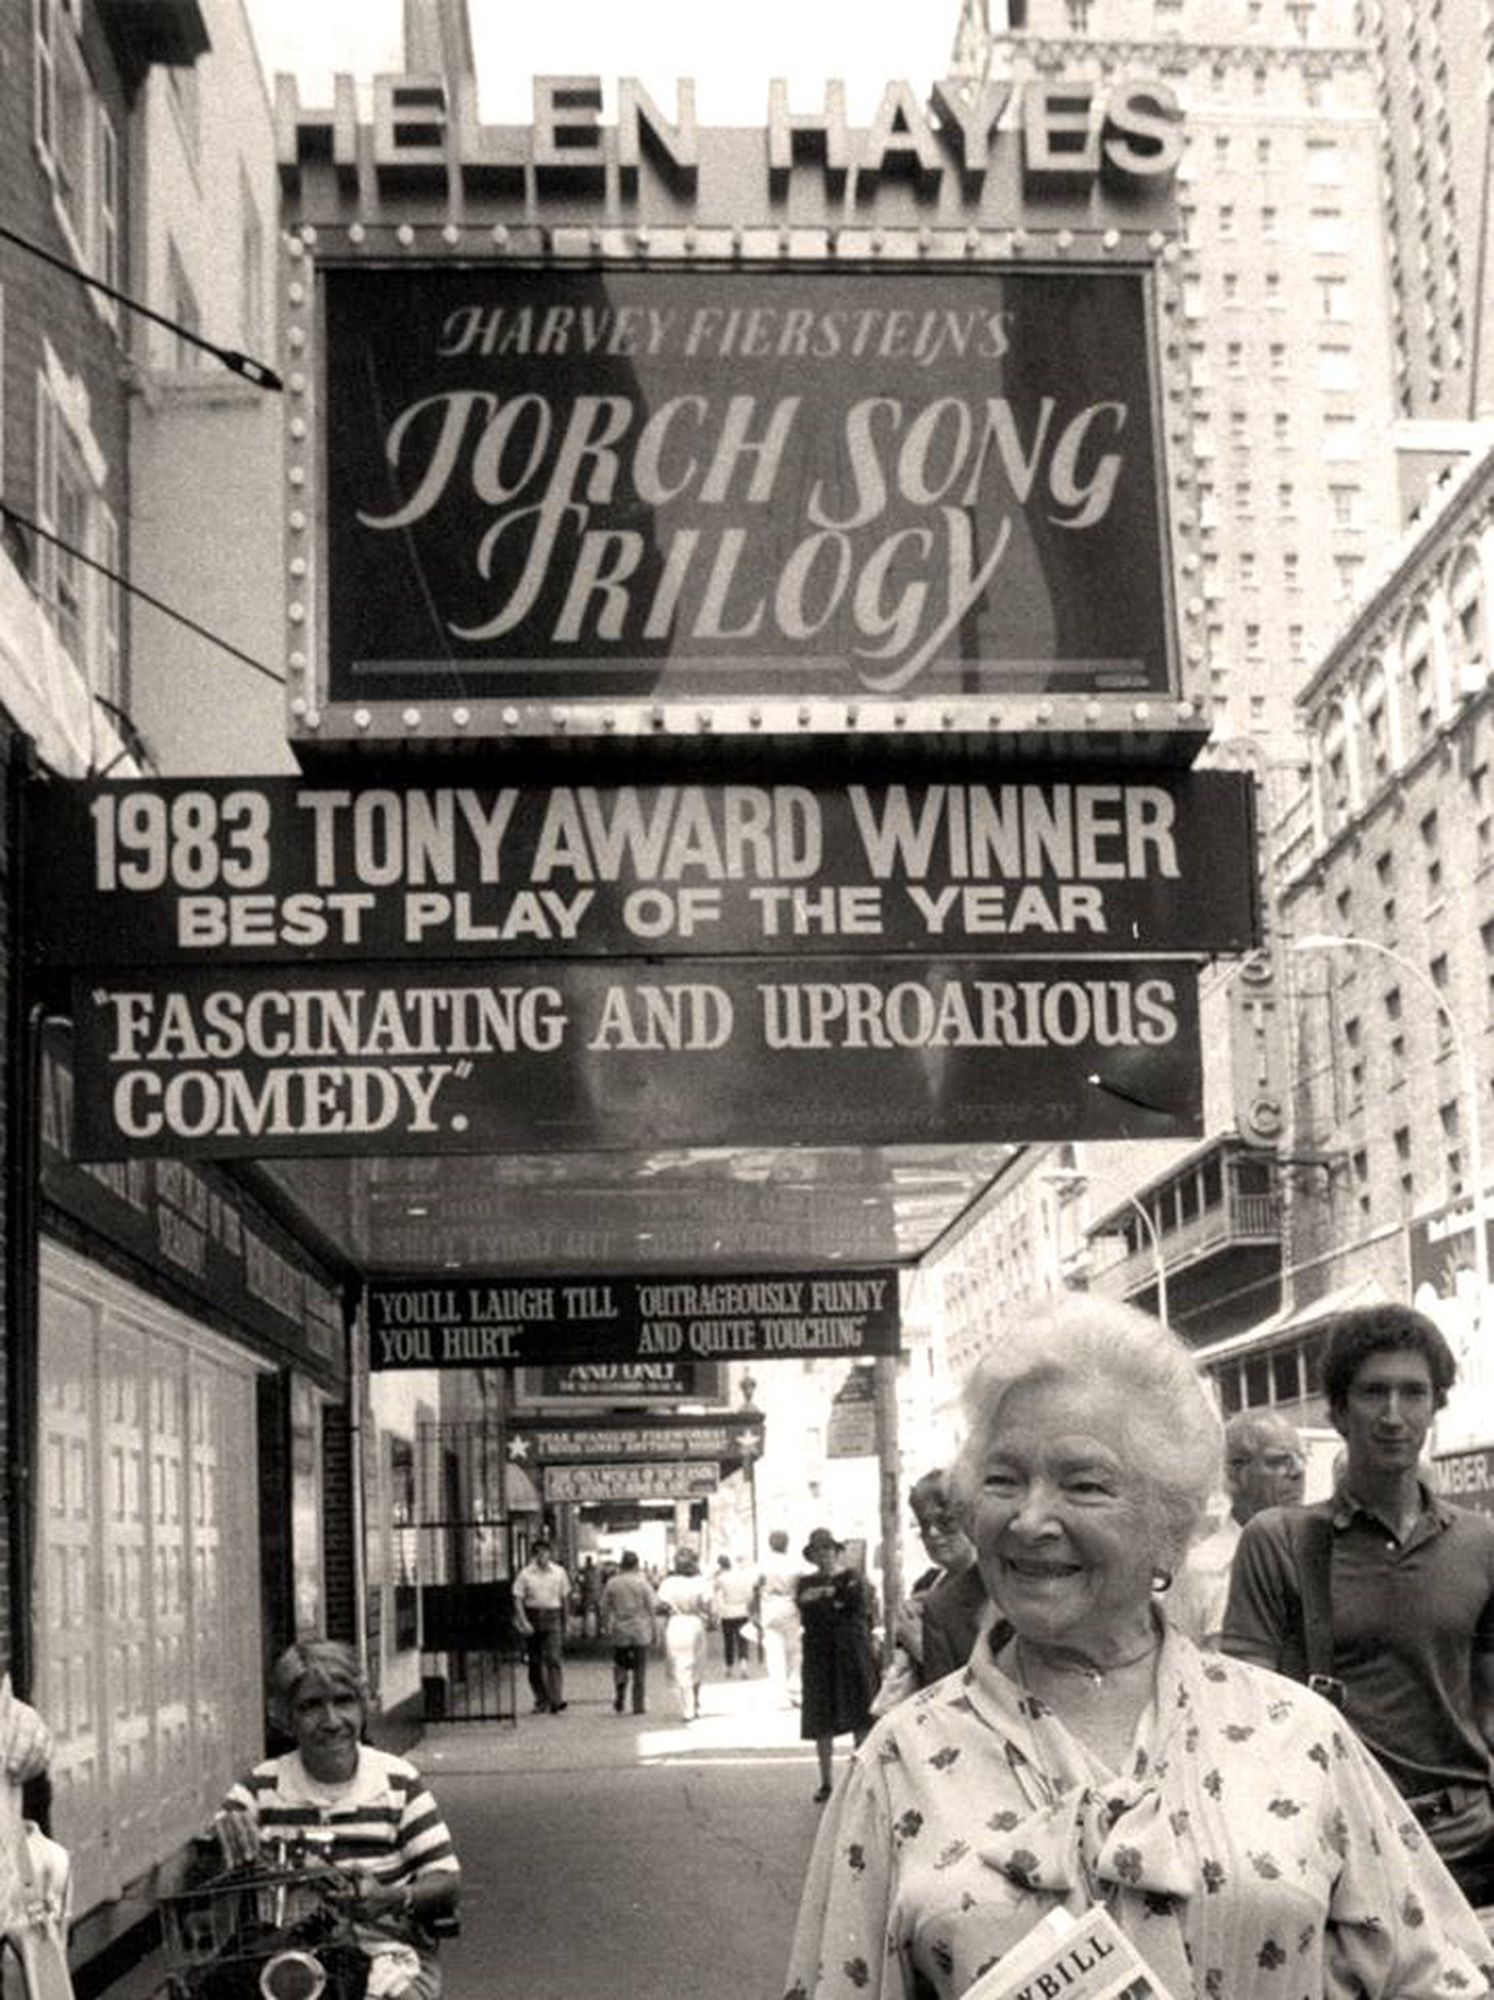 Torch Song Helen Hayes